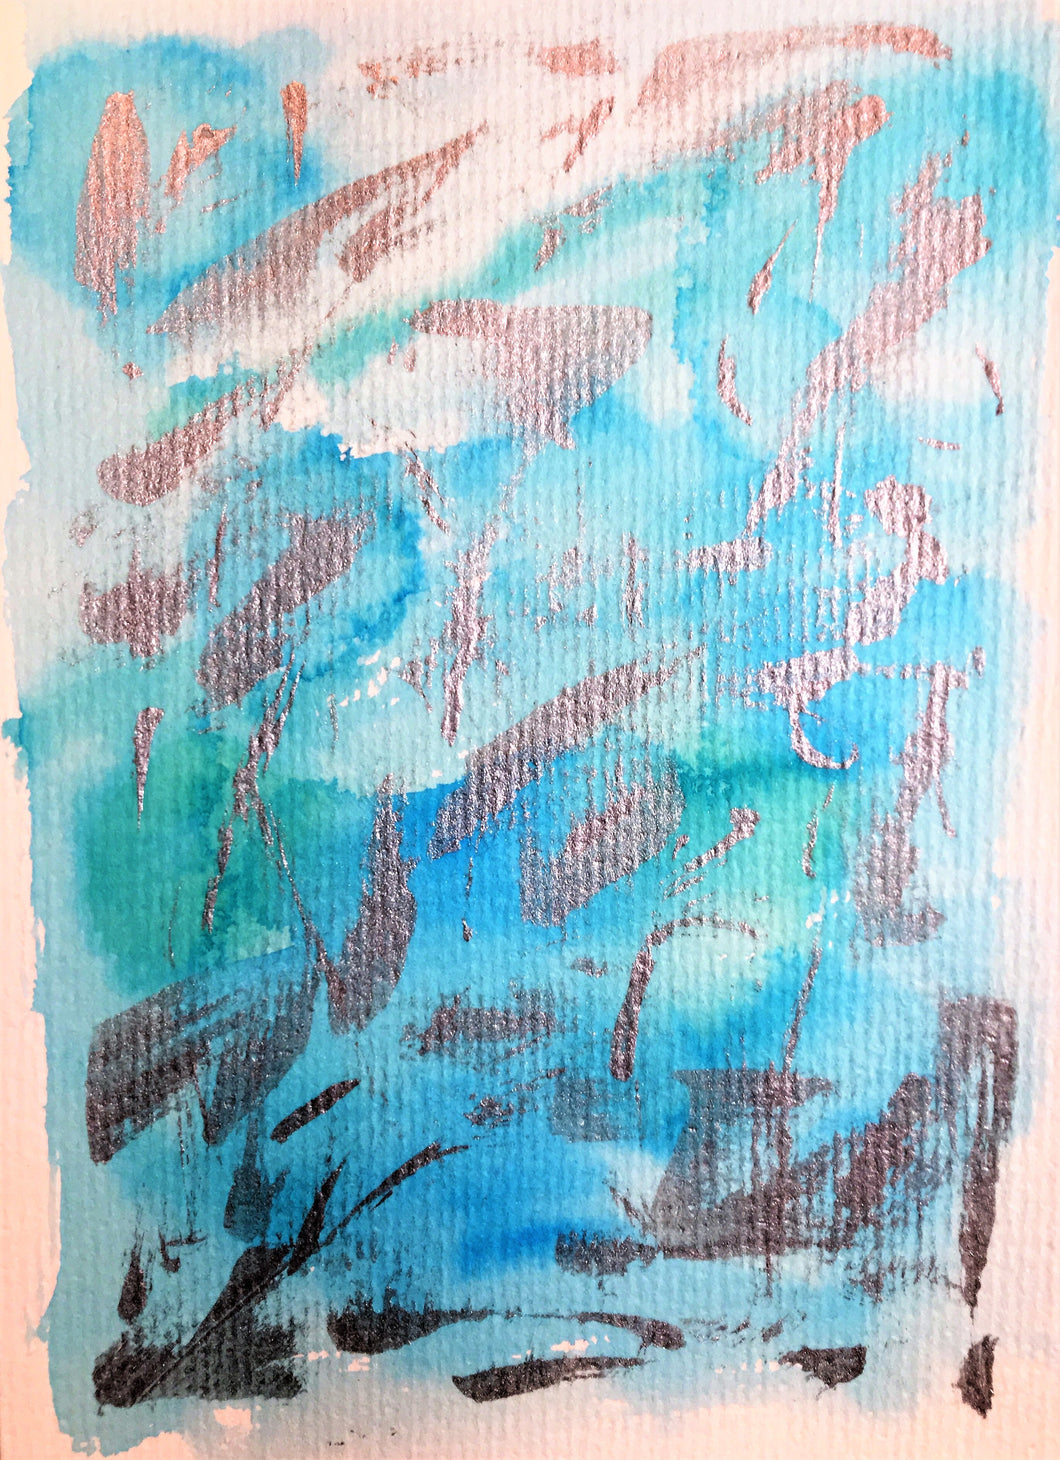 Hand-painted Greeting Card - Abstract Turquoise and Silver Design - eDgE dEsiGn London